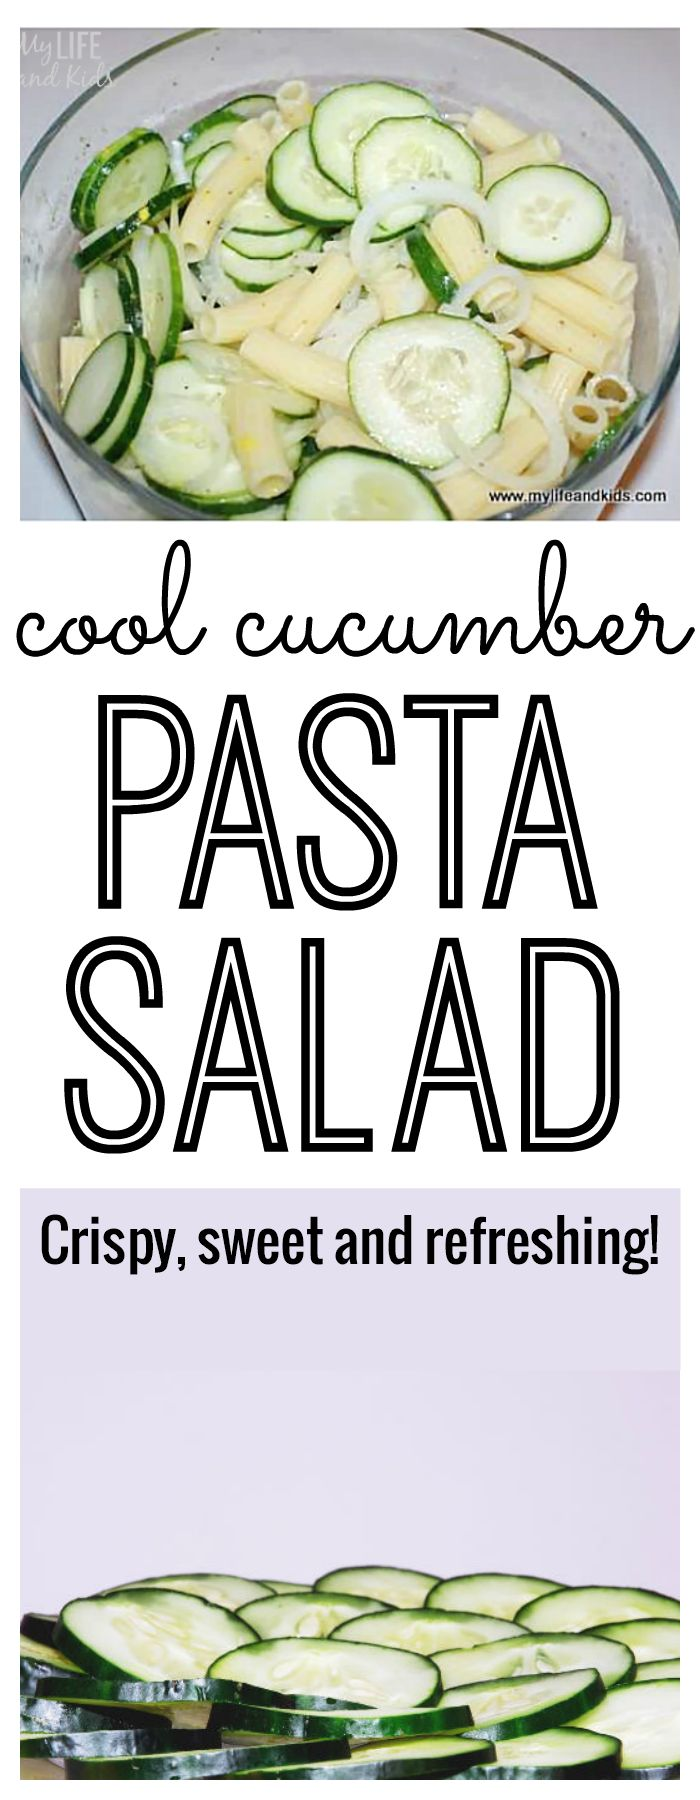 Cucumber Pasta Salad - YUM! Everyone begs me for this recipe! The perfect side to bring to a picnic or serve to your guests. Caution - you will become addicted!